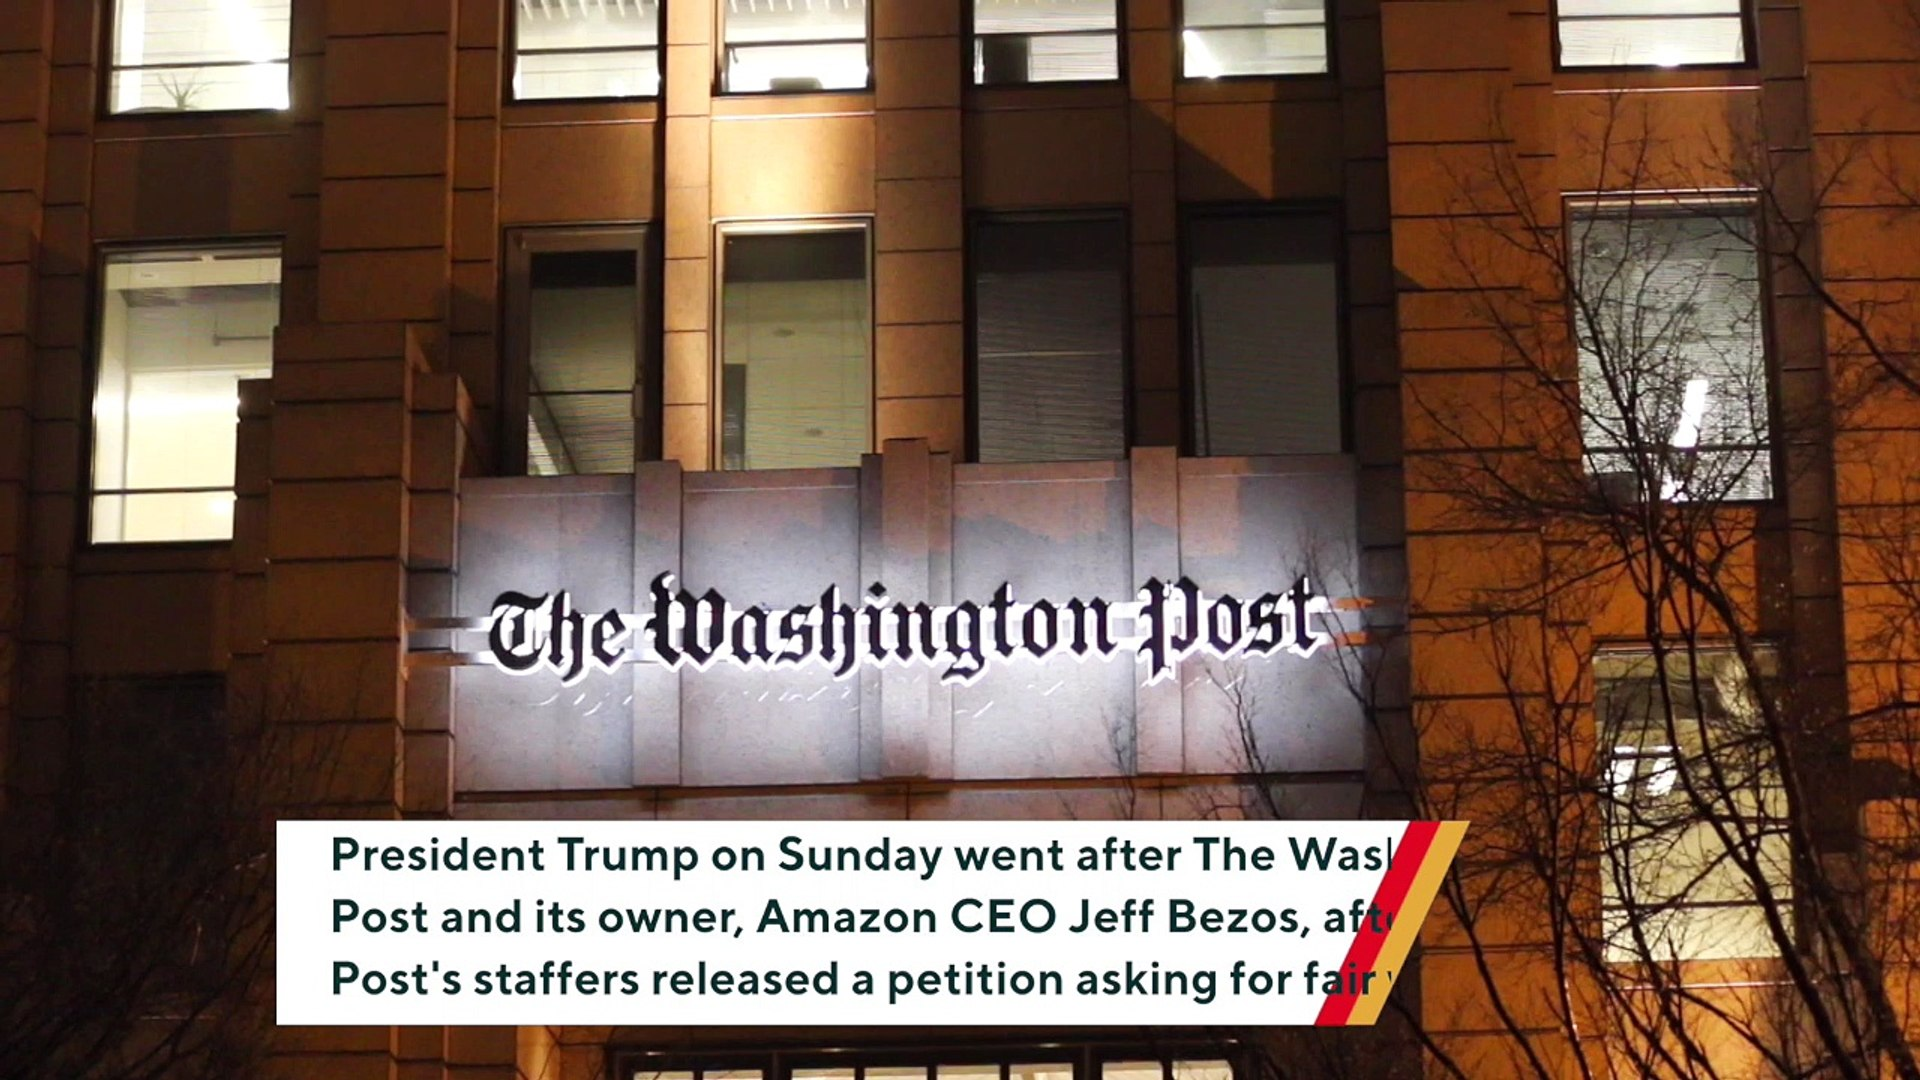 Trump Encourages Washington Post Staffers To Go On 'A Really Long Strike' To 'Get Rid